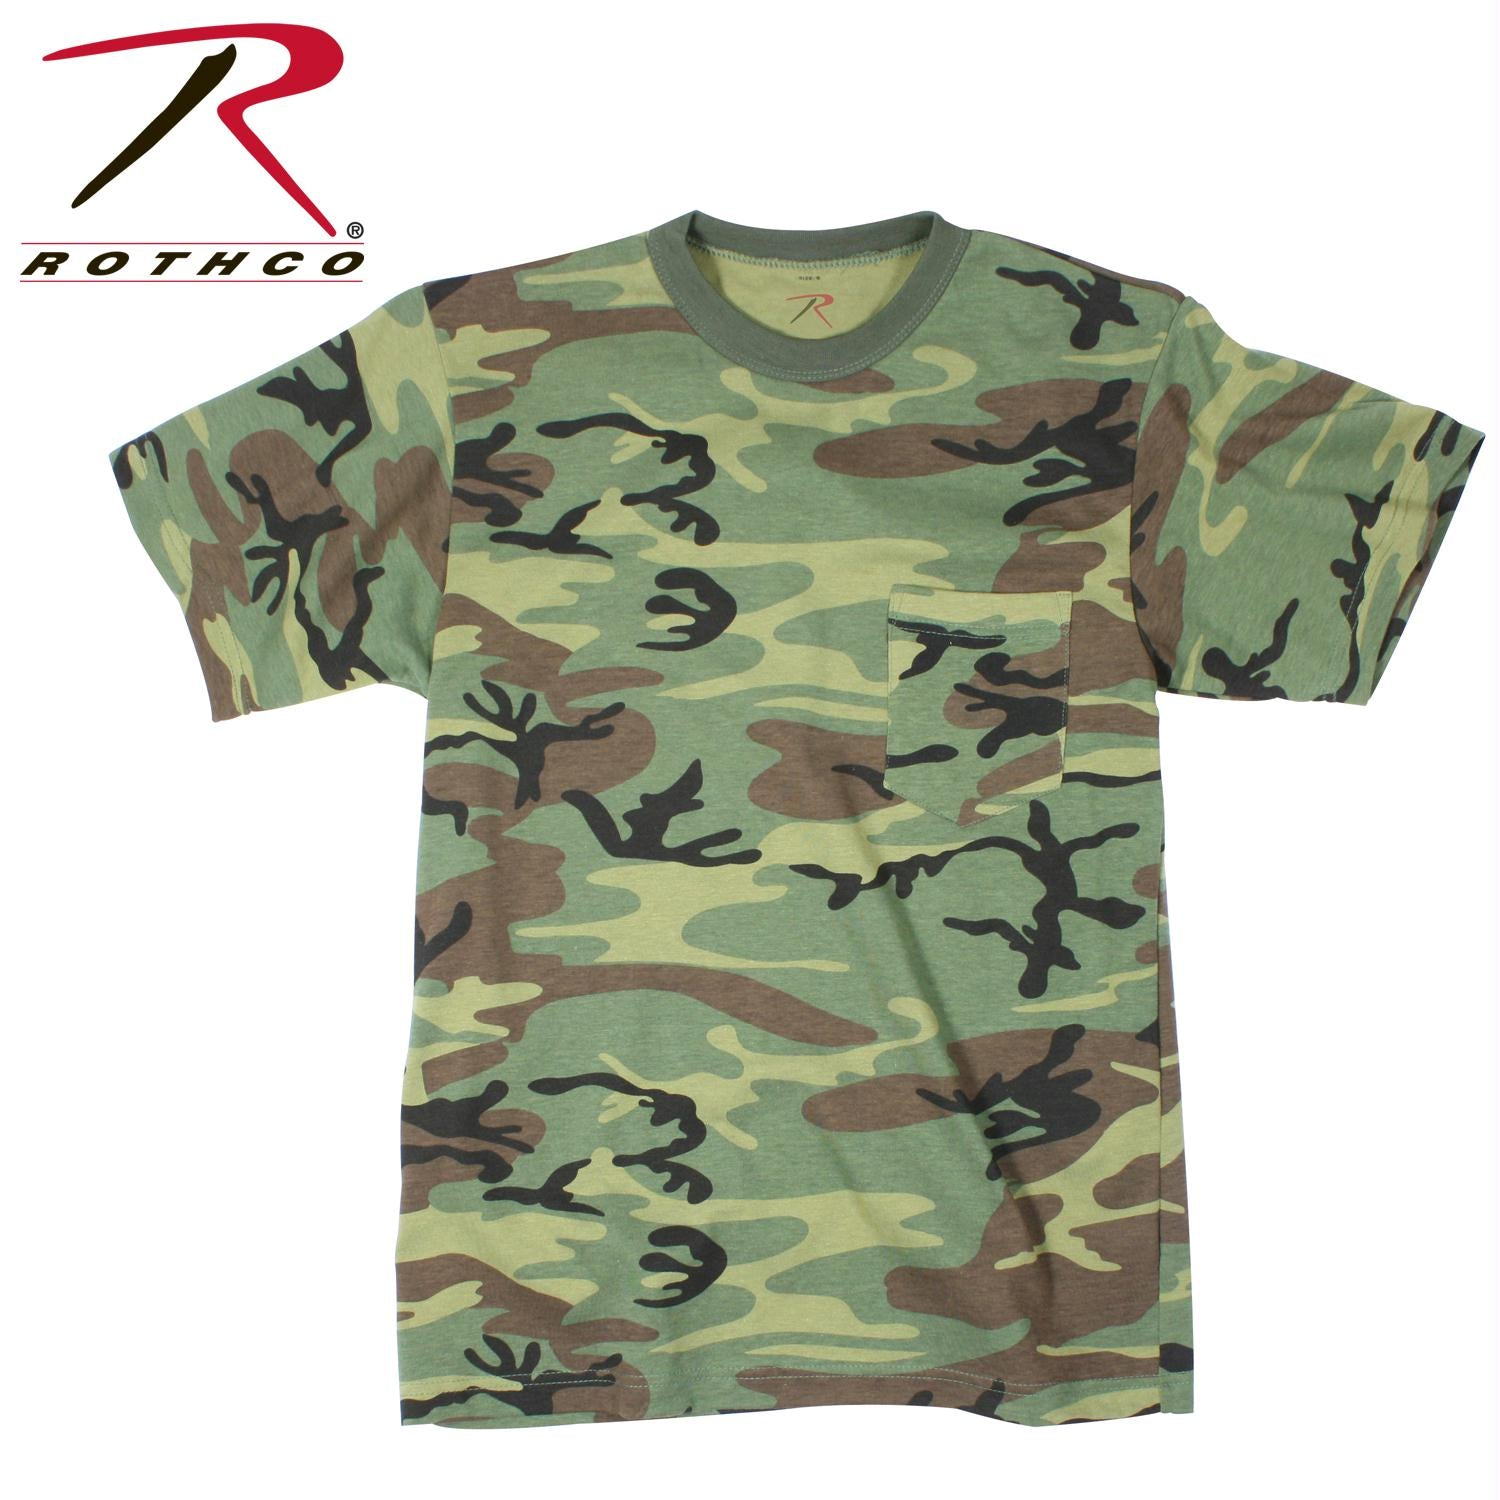 Rothco Woodland Camo T-Shirt w/ Pocket - 3XL